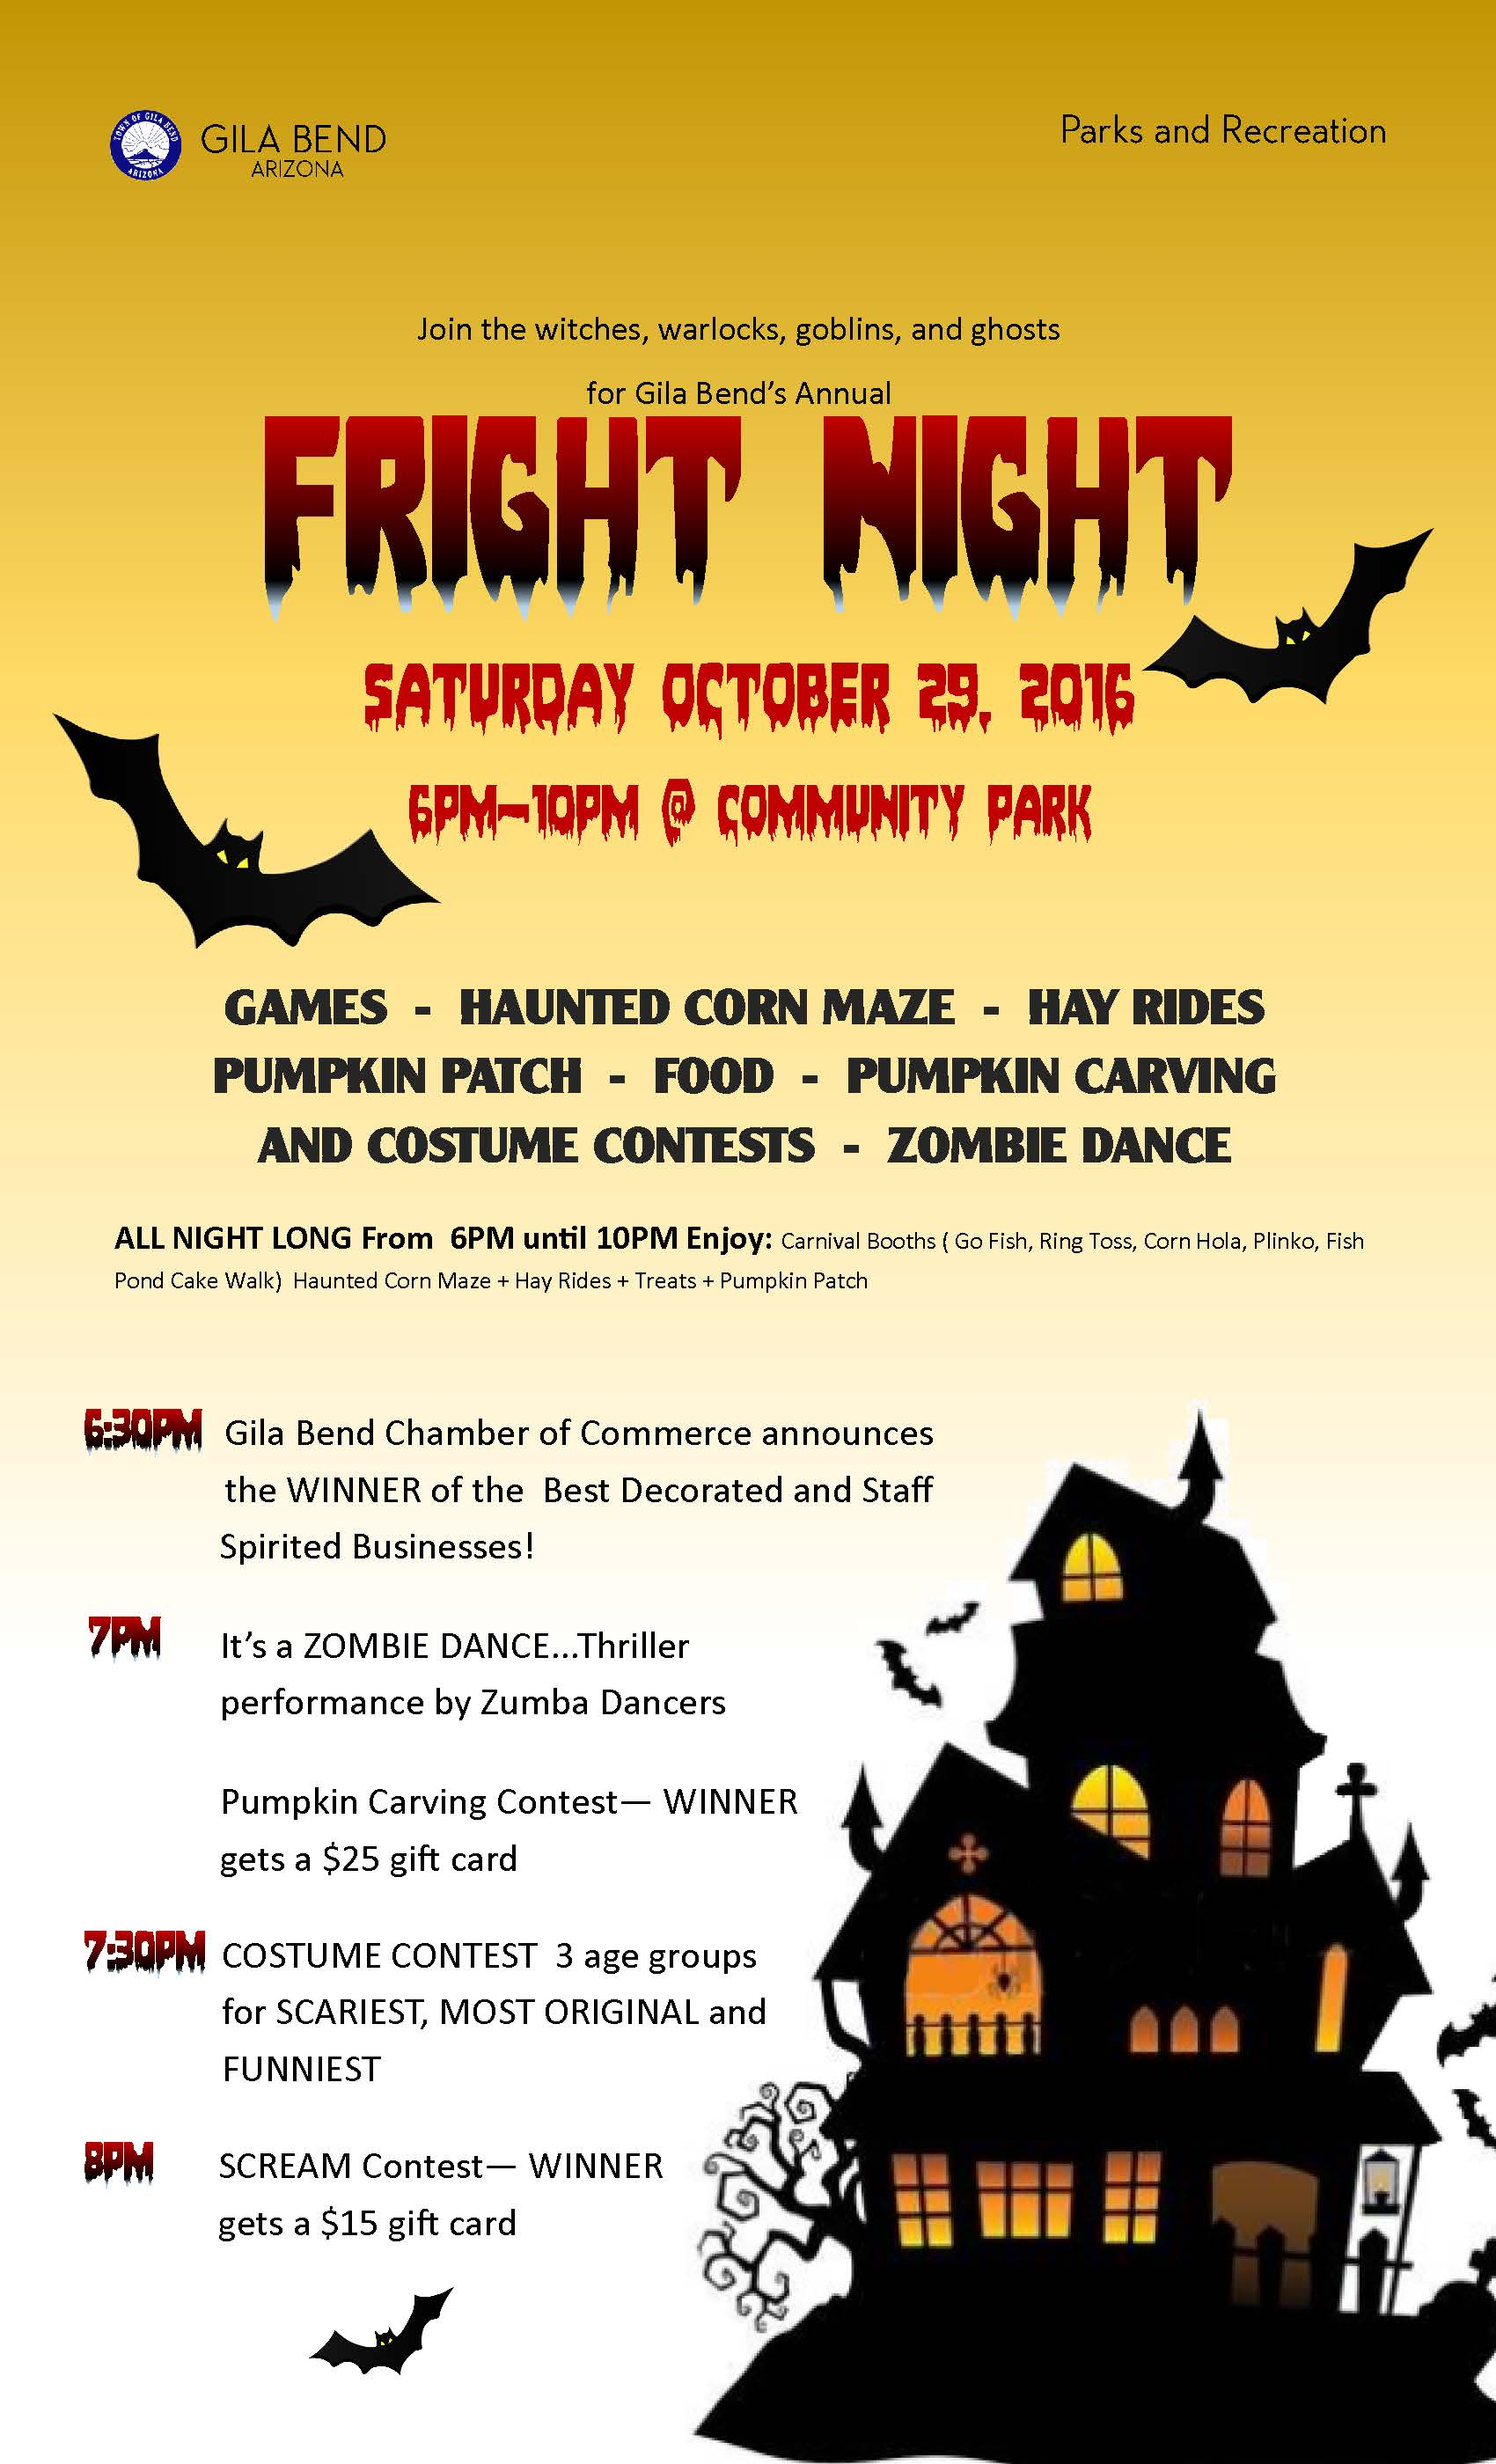 Gila Bend's Fright Night poster showcasing treats, games and contests for everyone. OCt 29th begins at 6pm